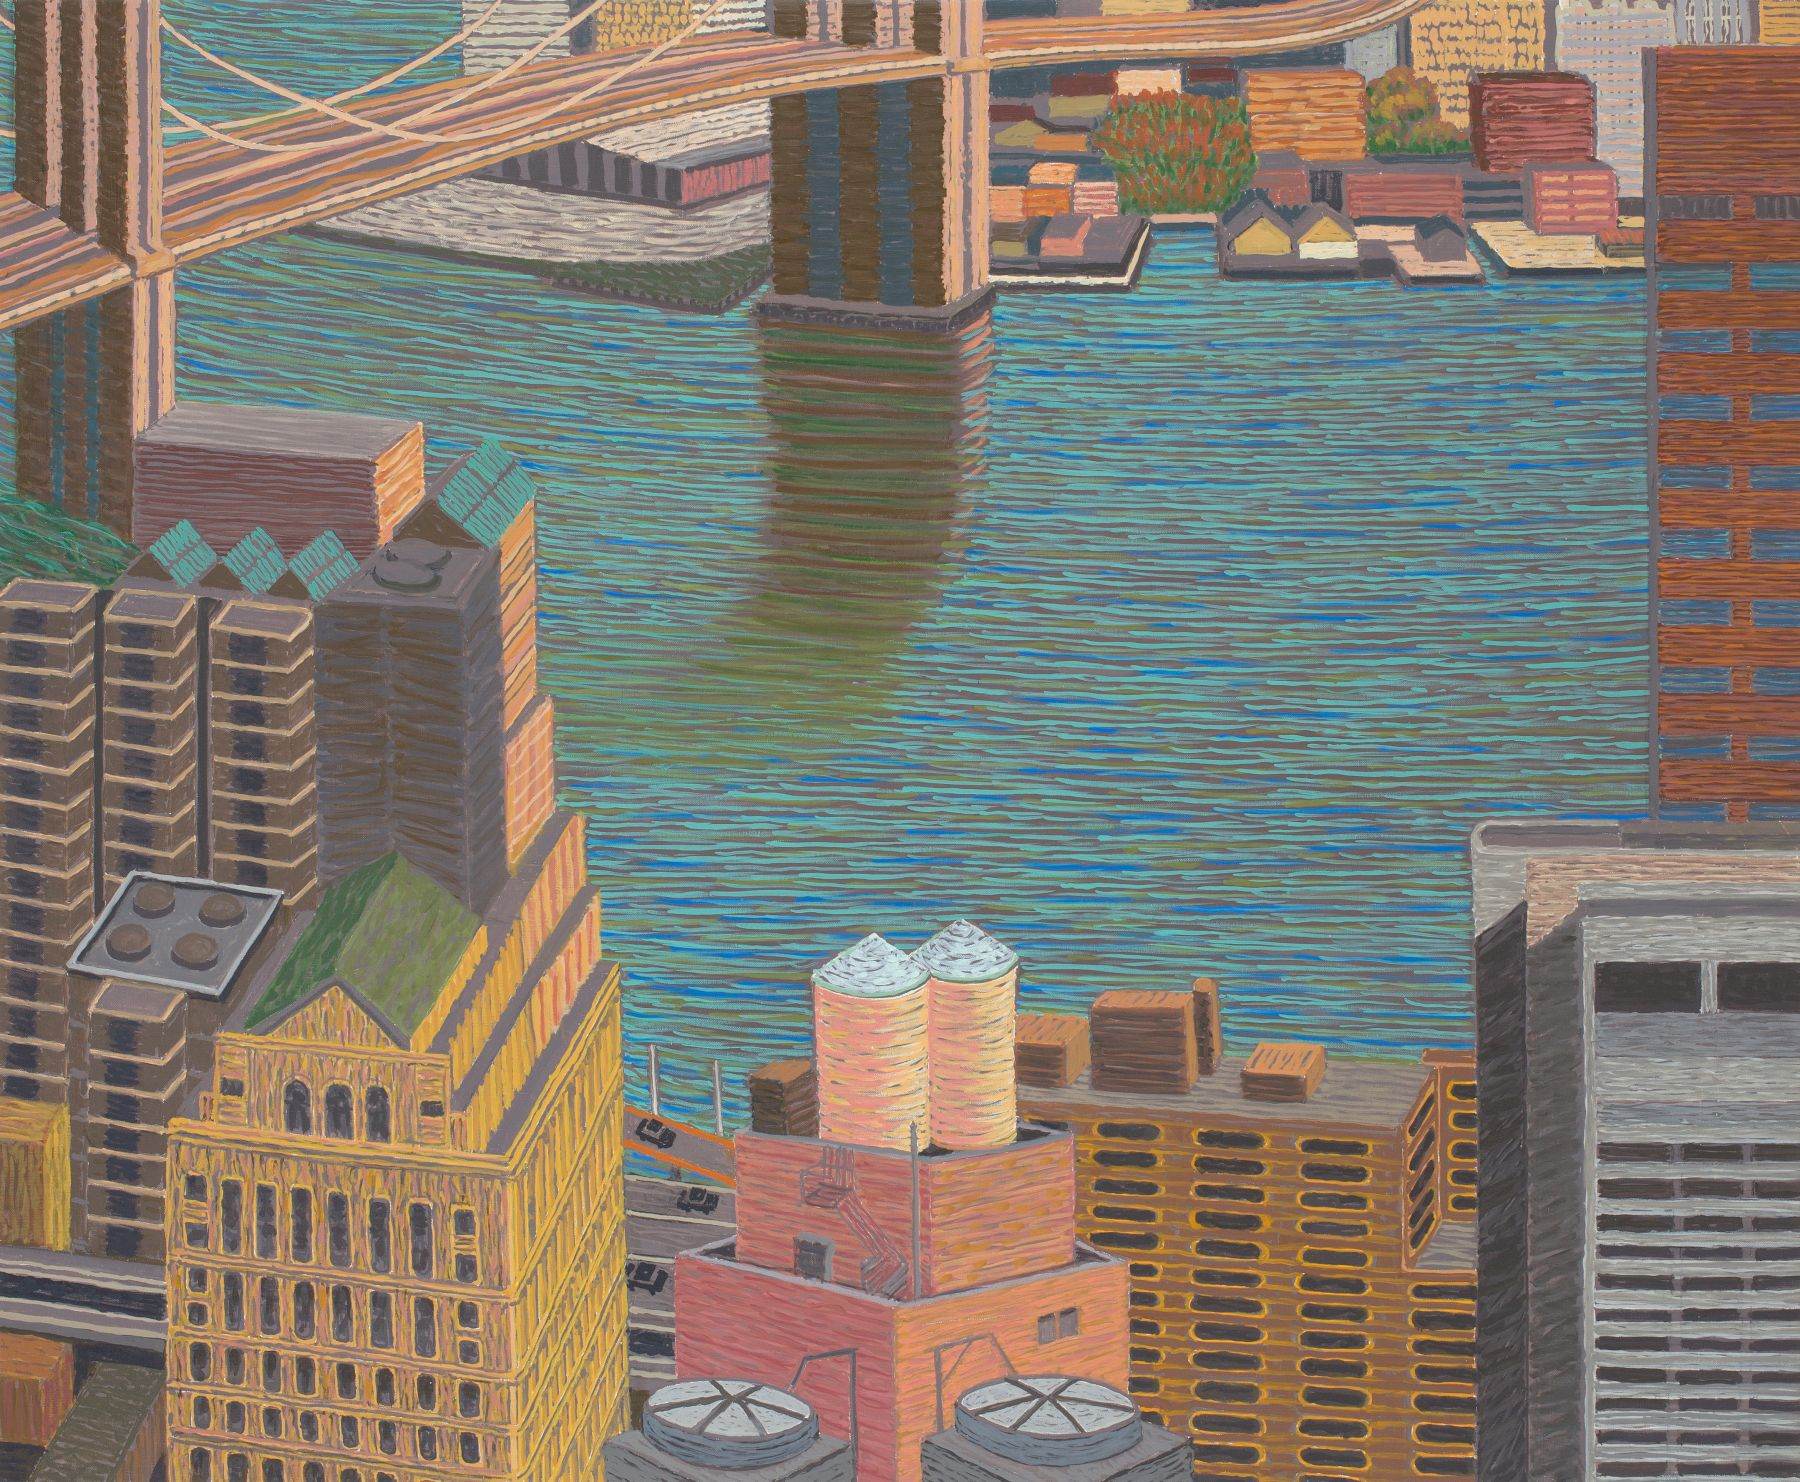 Brooklyn Bridge View with Double Water Towers, 2015